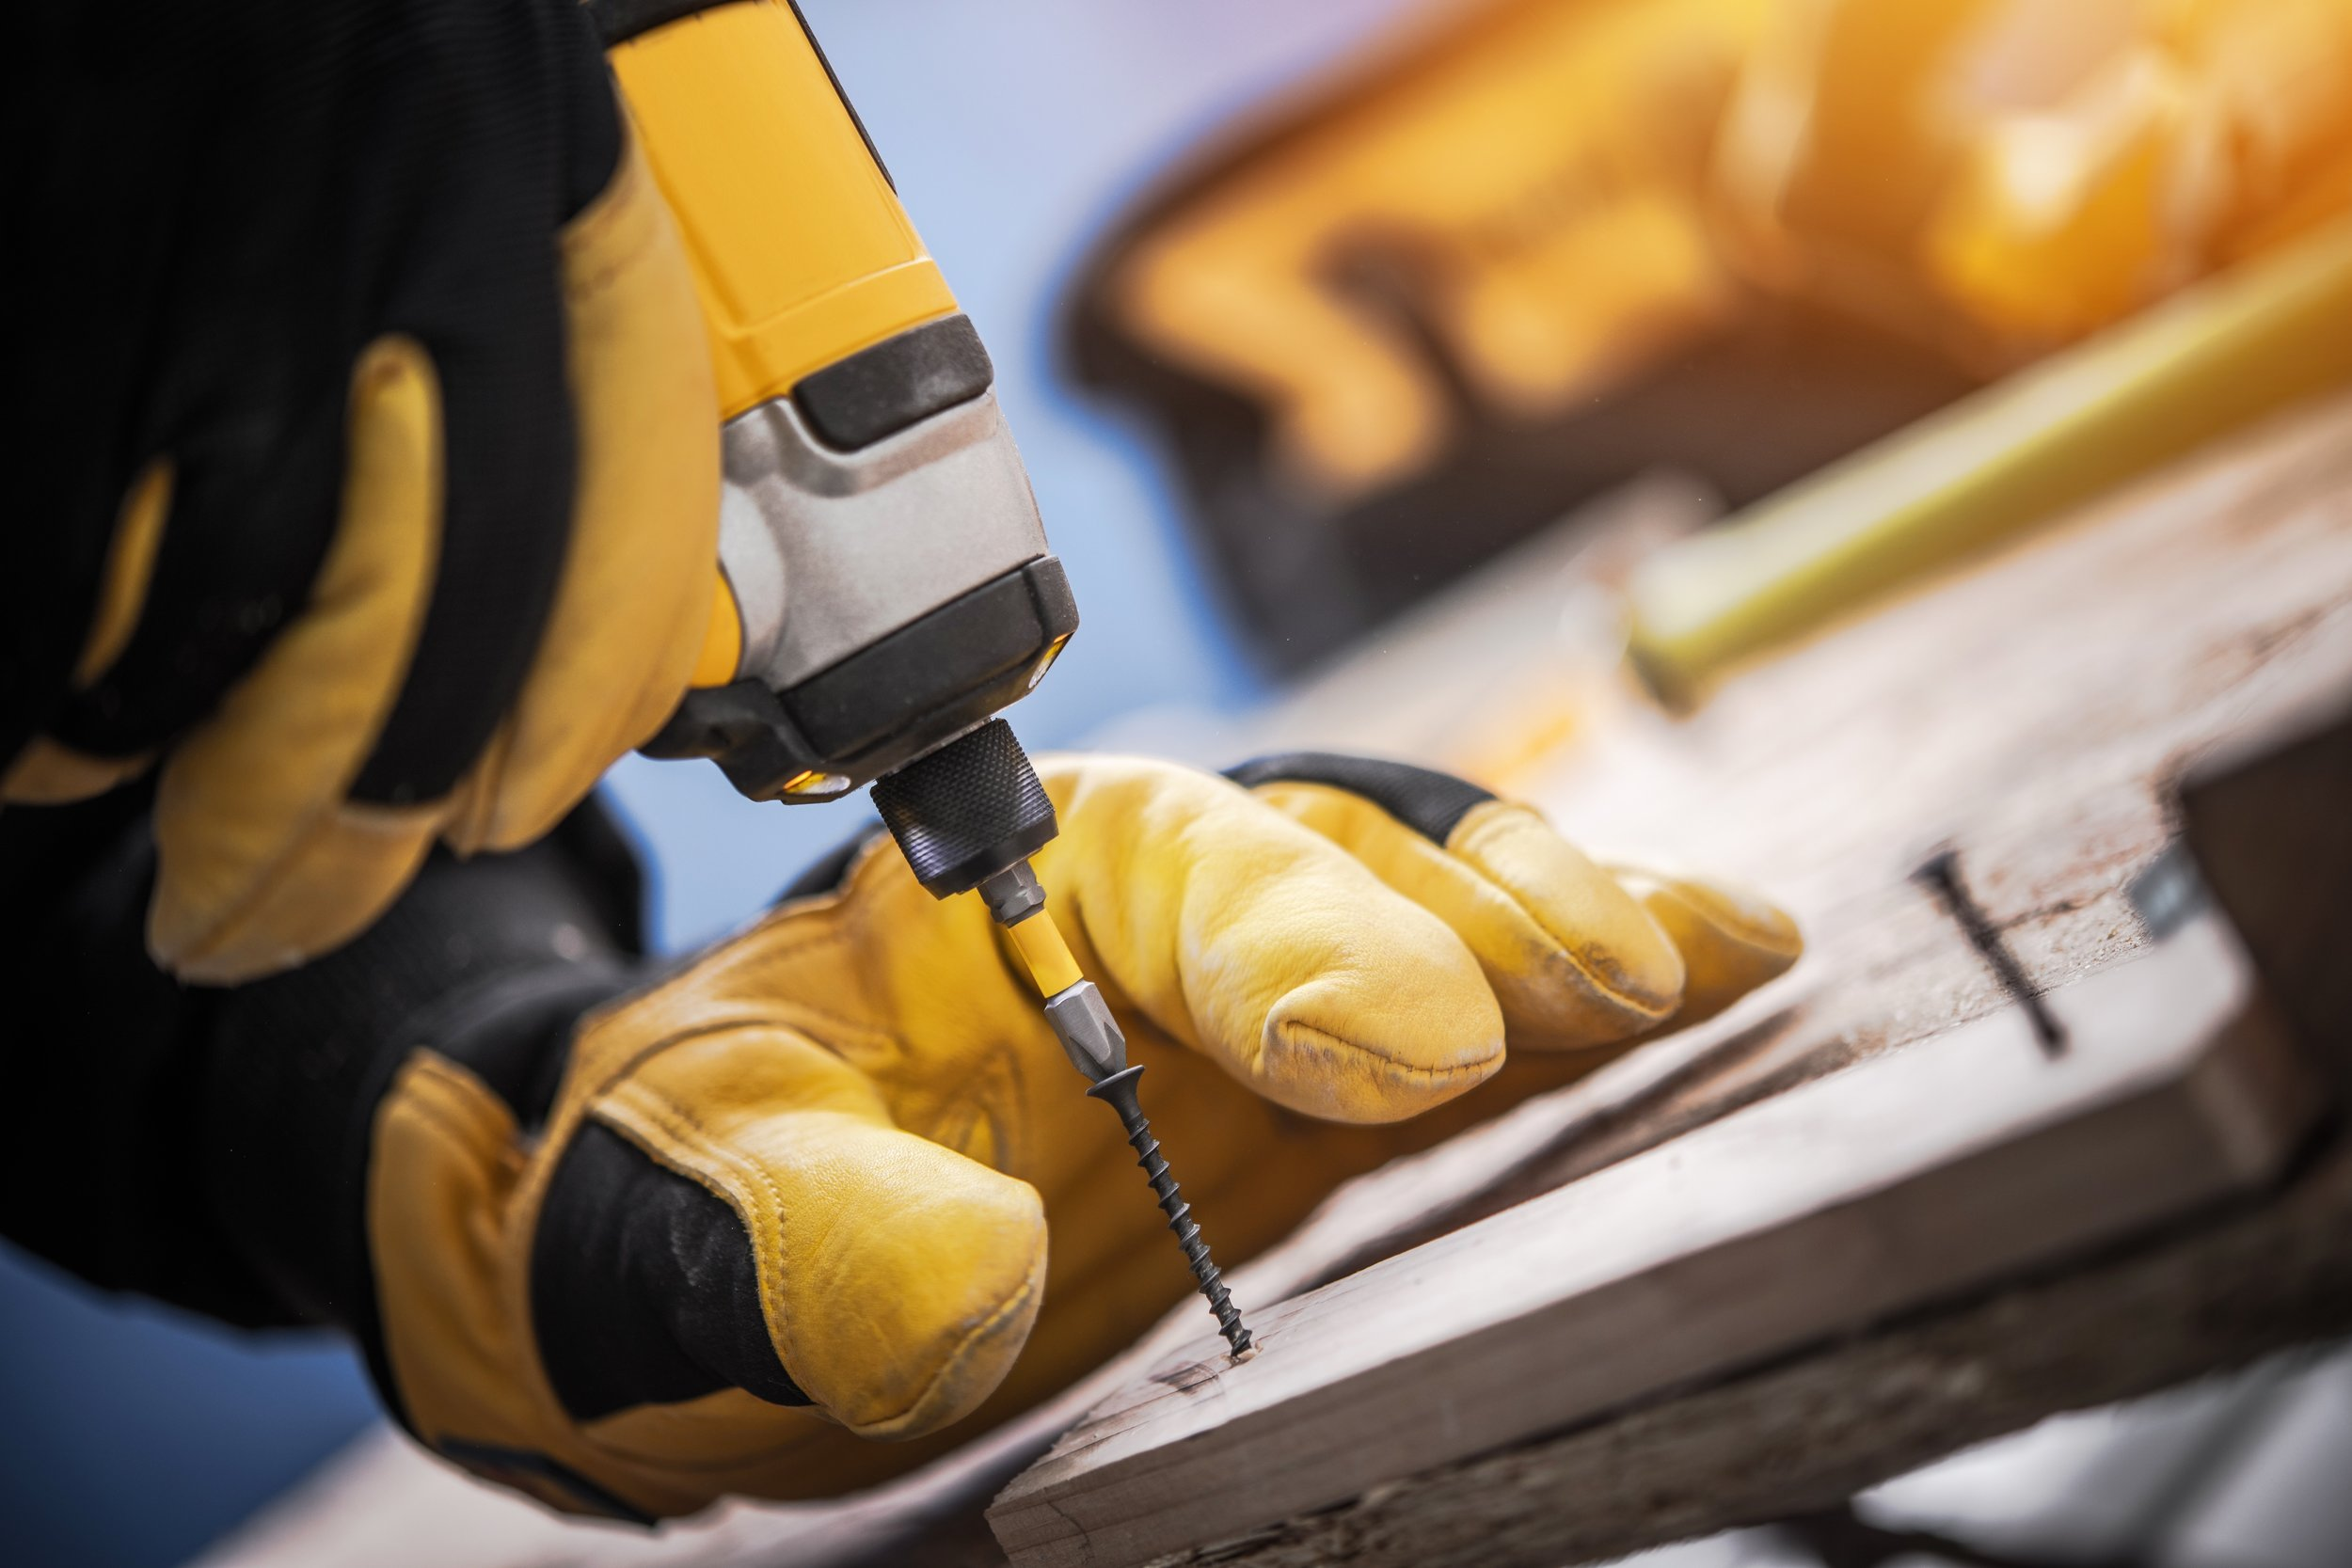 8 Must-Have Carpentry_Woodworking Tools for your DIY Home Projects.jpg